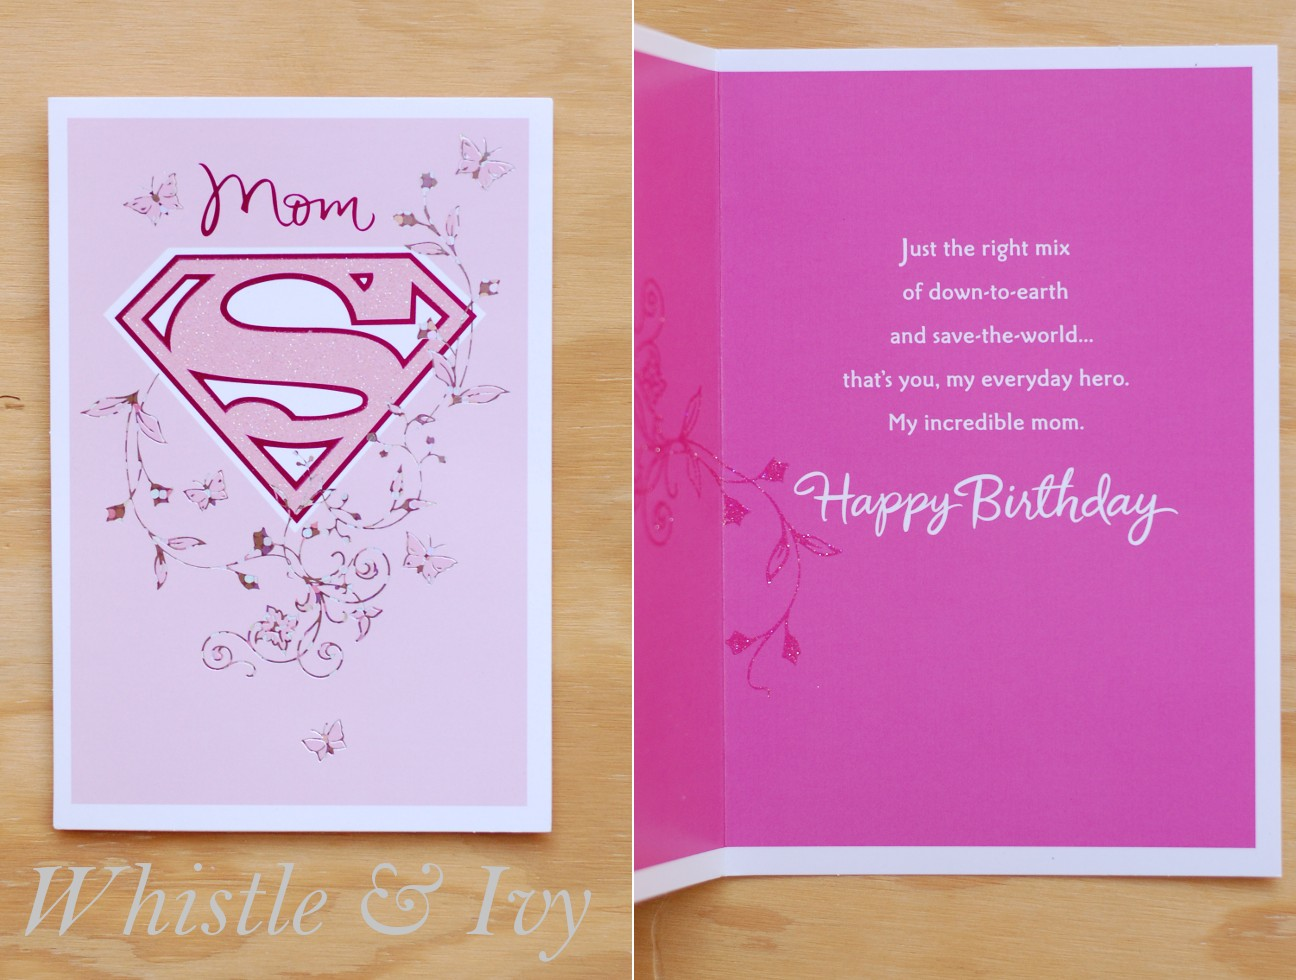 mother birthday card sayings ; sayings-to-write-in-a-birthday-card-elegant-mothers-birthday-cards-my-birthday-pinterest-of-sayings-to-write-in-a-birthday-card